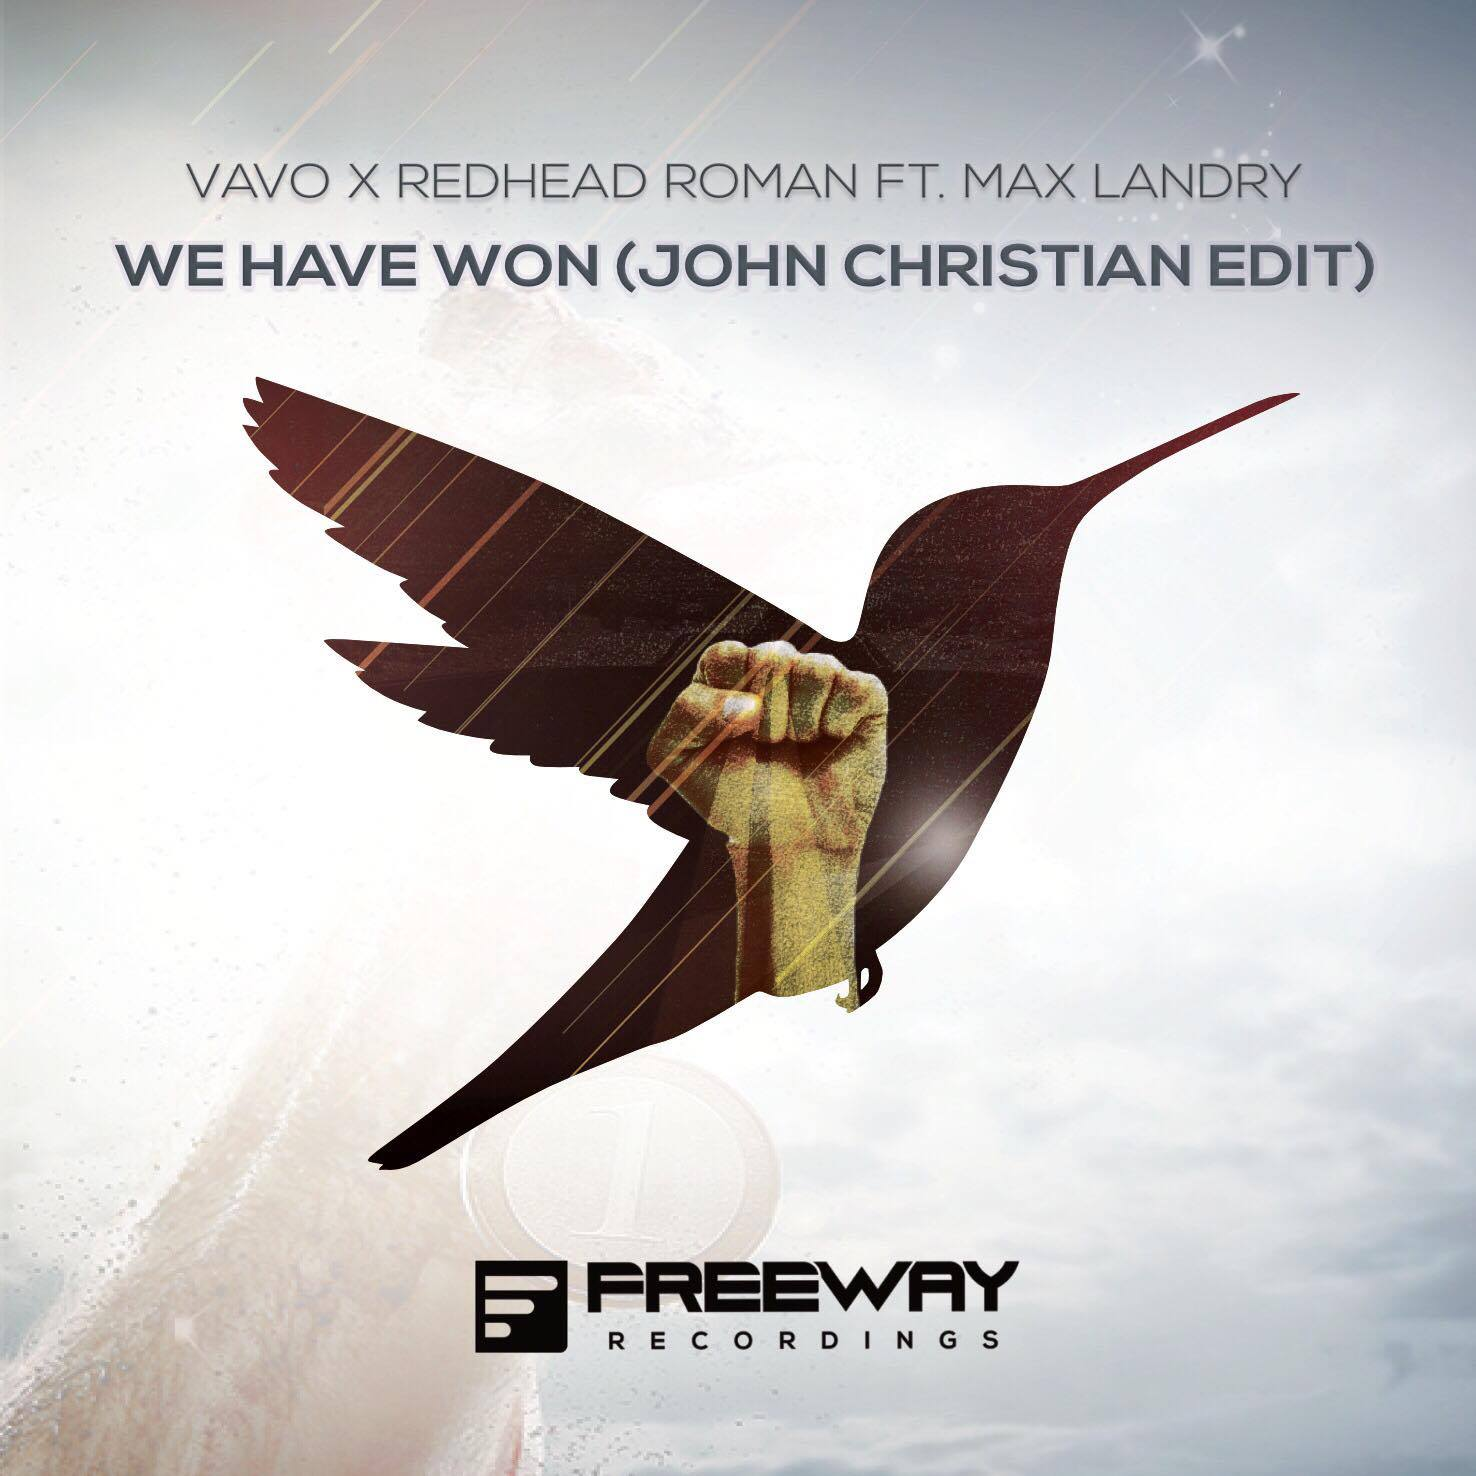 """Download/Stream """"We Have Won (John Christian Edit)""""by clicking   HERE !"""